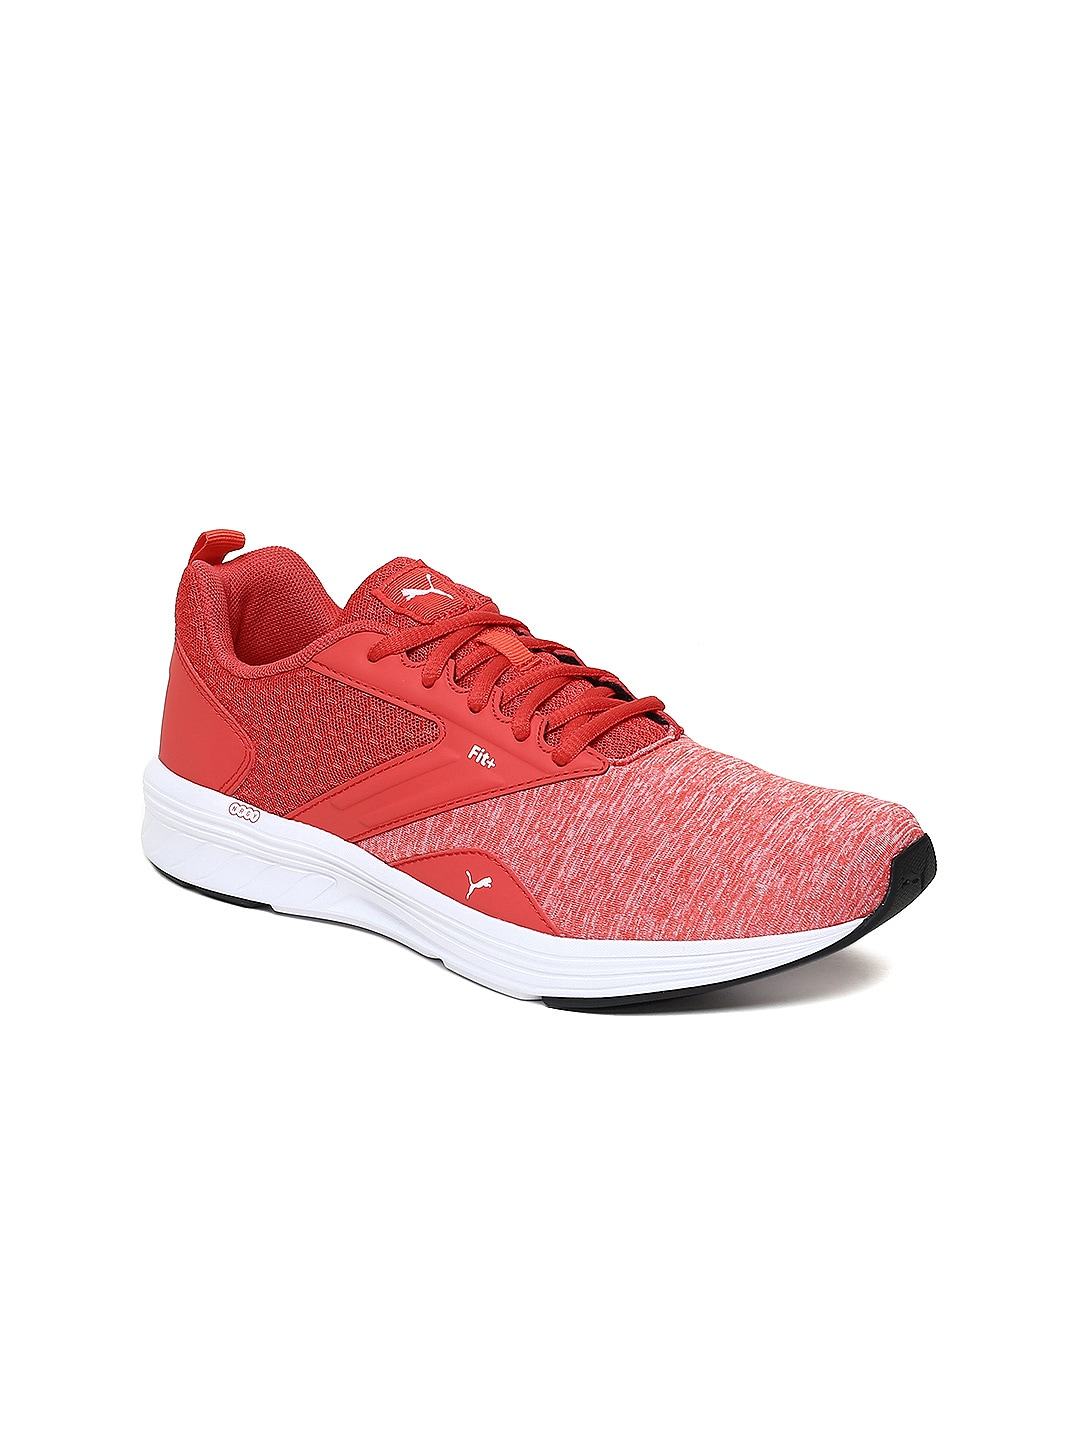 02be517191e5 Puma Red Shoes - Buy Puma Red Shoes Online in India